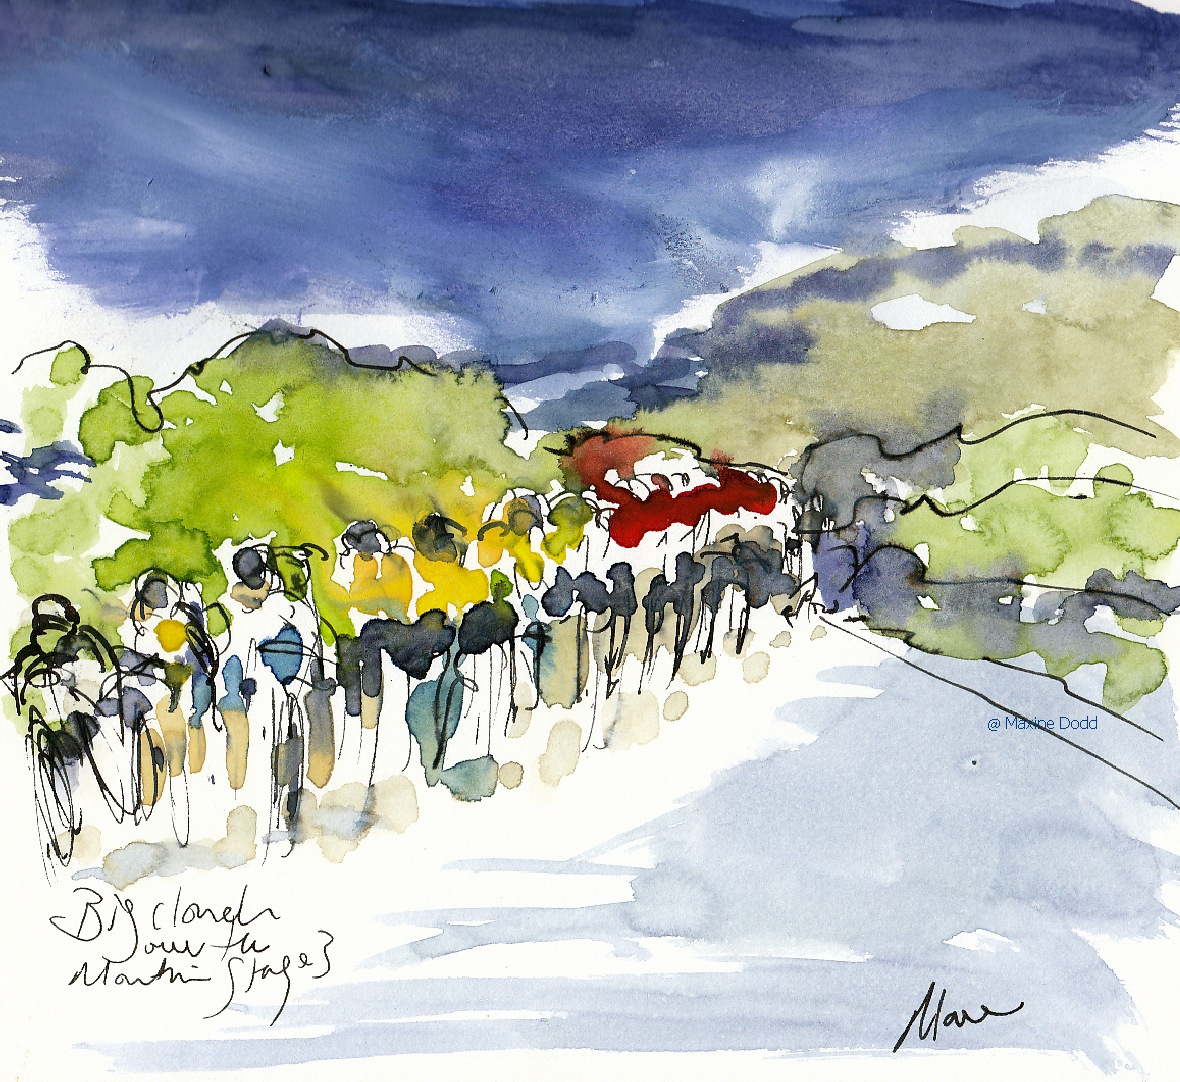 Big clouds over the mountains - watercolour, pen and ink by Maxine Dodd